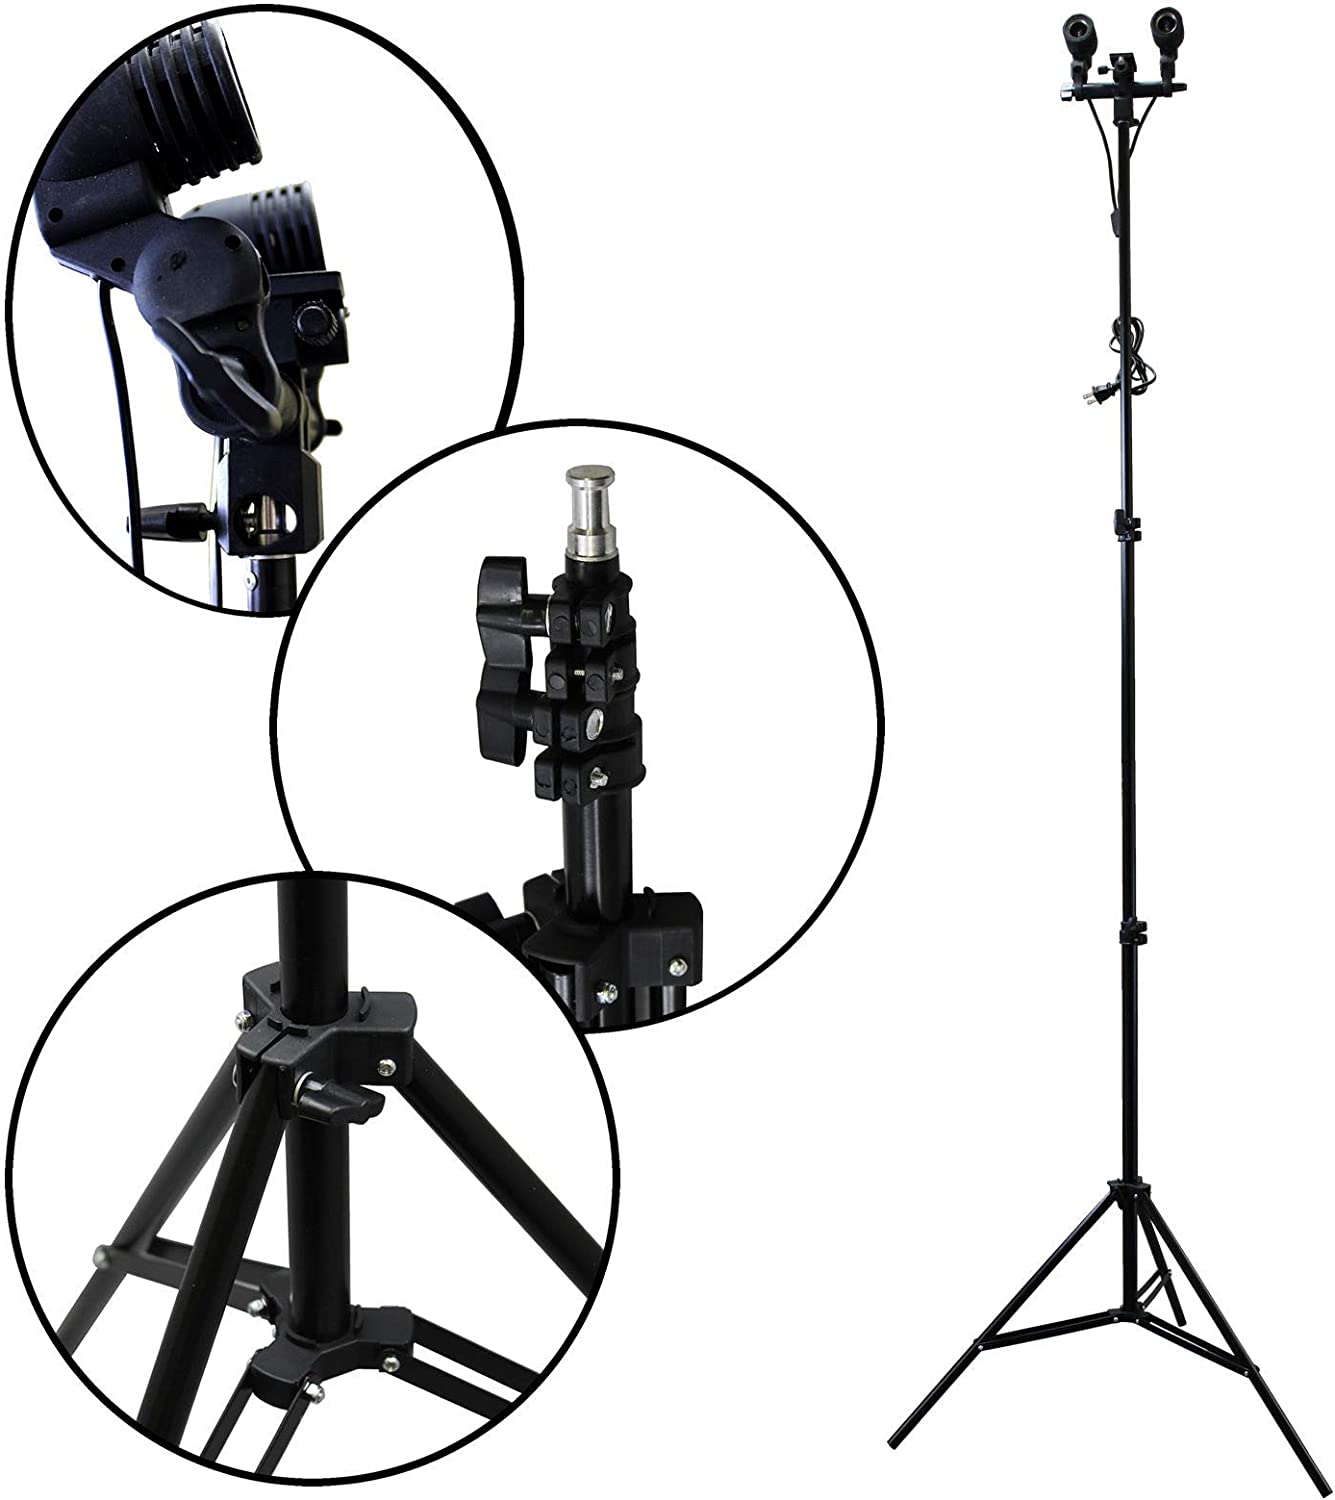 Bright Sun 1 Set Light Stand Tripod #BDMN